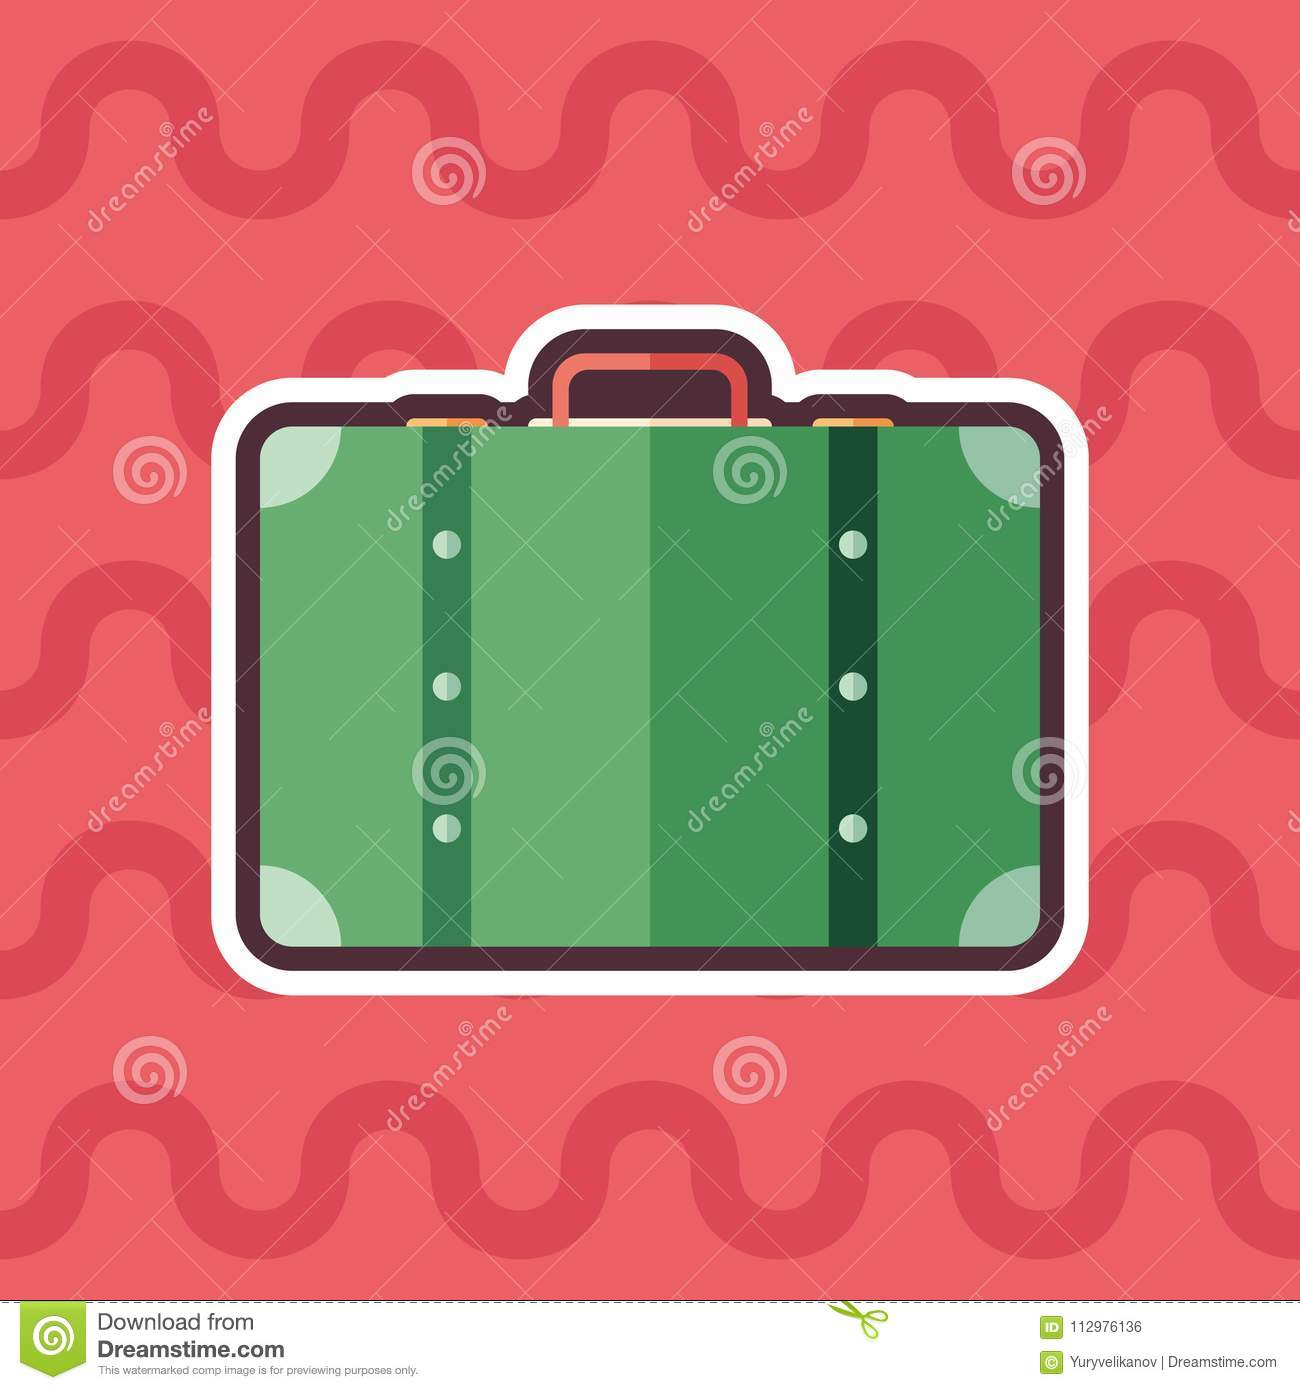 Retro suitcase sticker flat icon with color background.